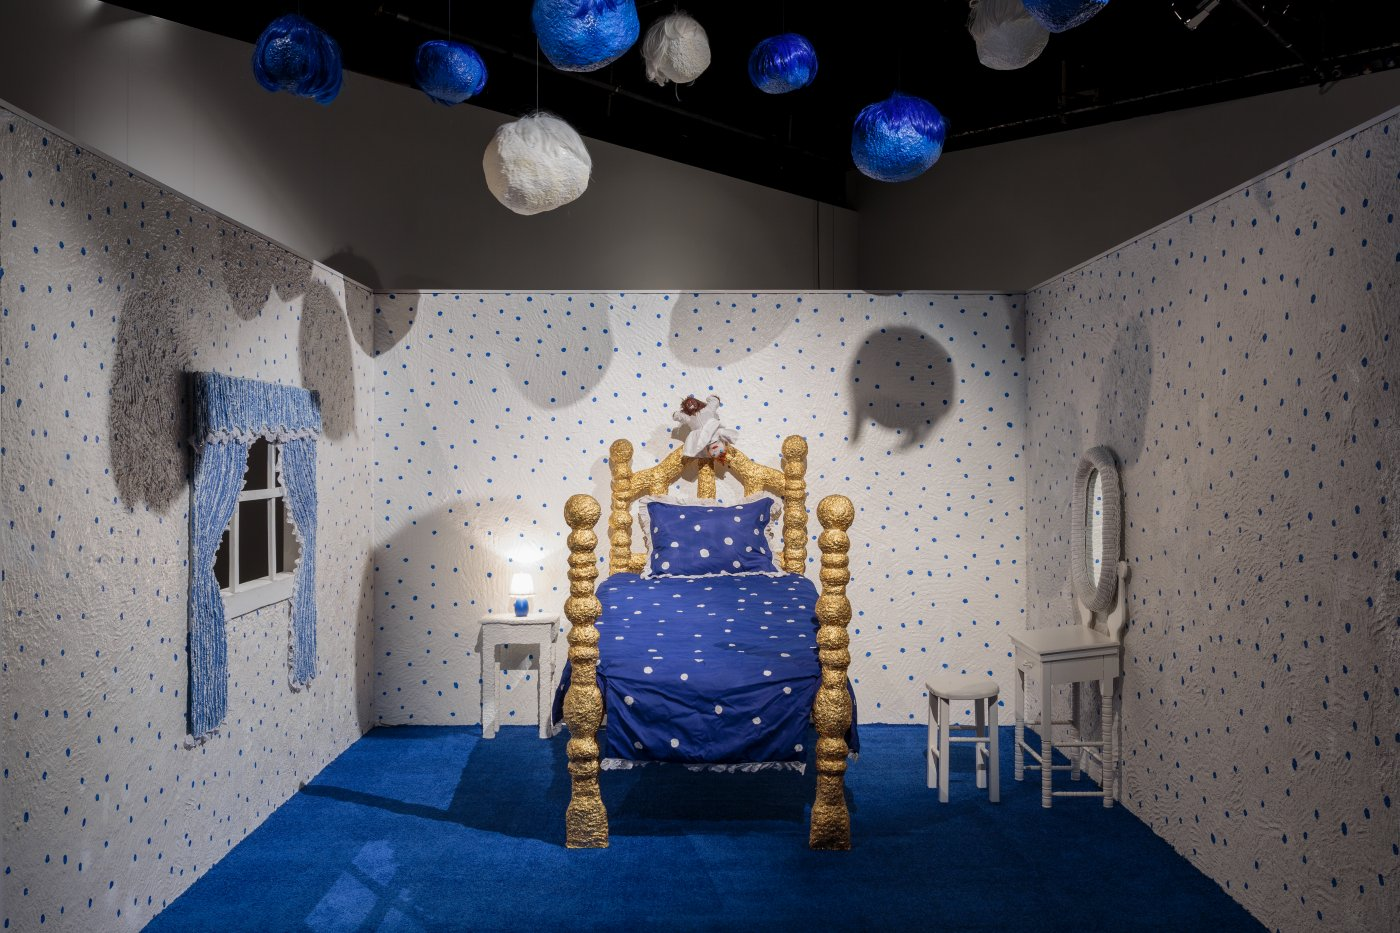 Installation views of Trulee Hall at Zabludowicz Collection